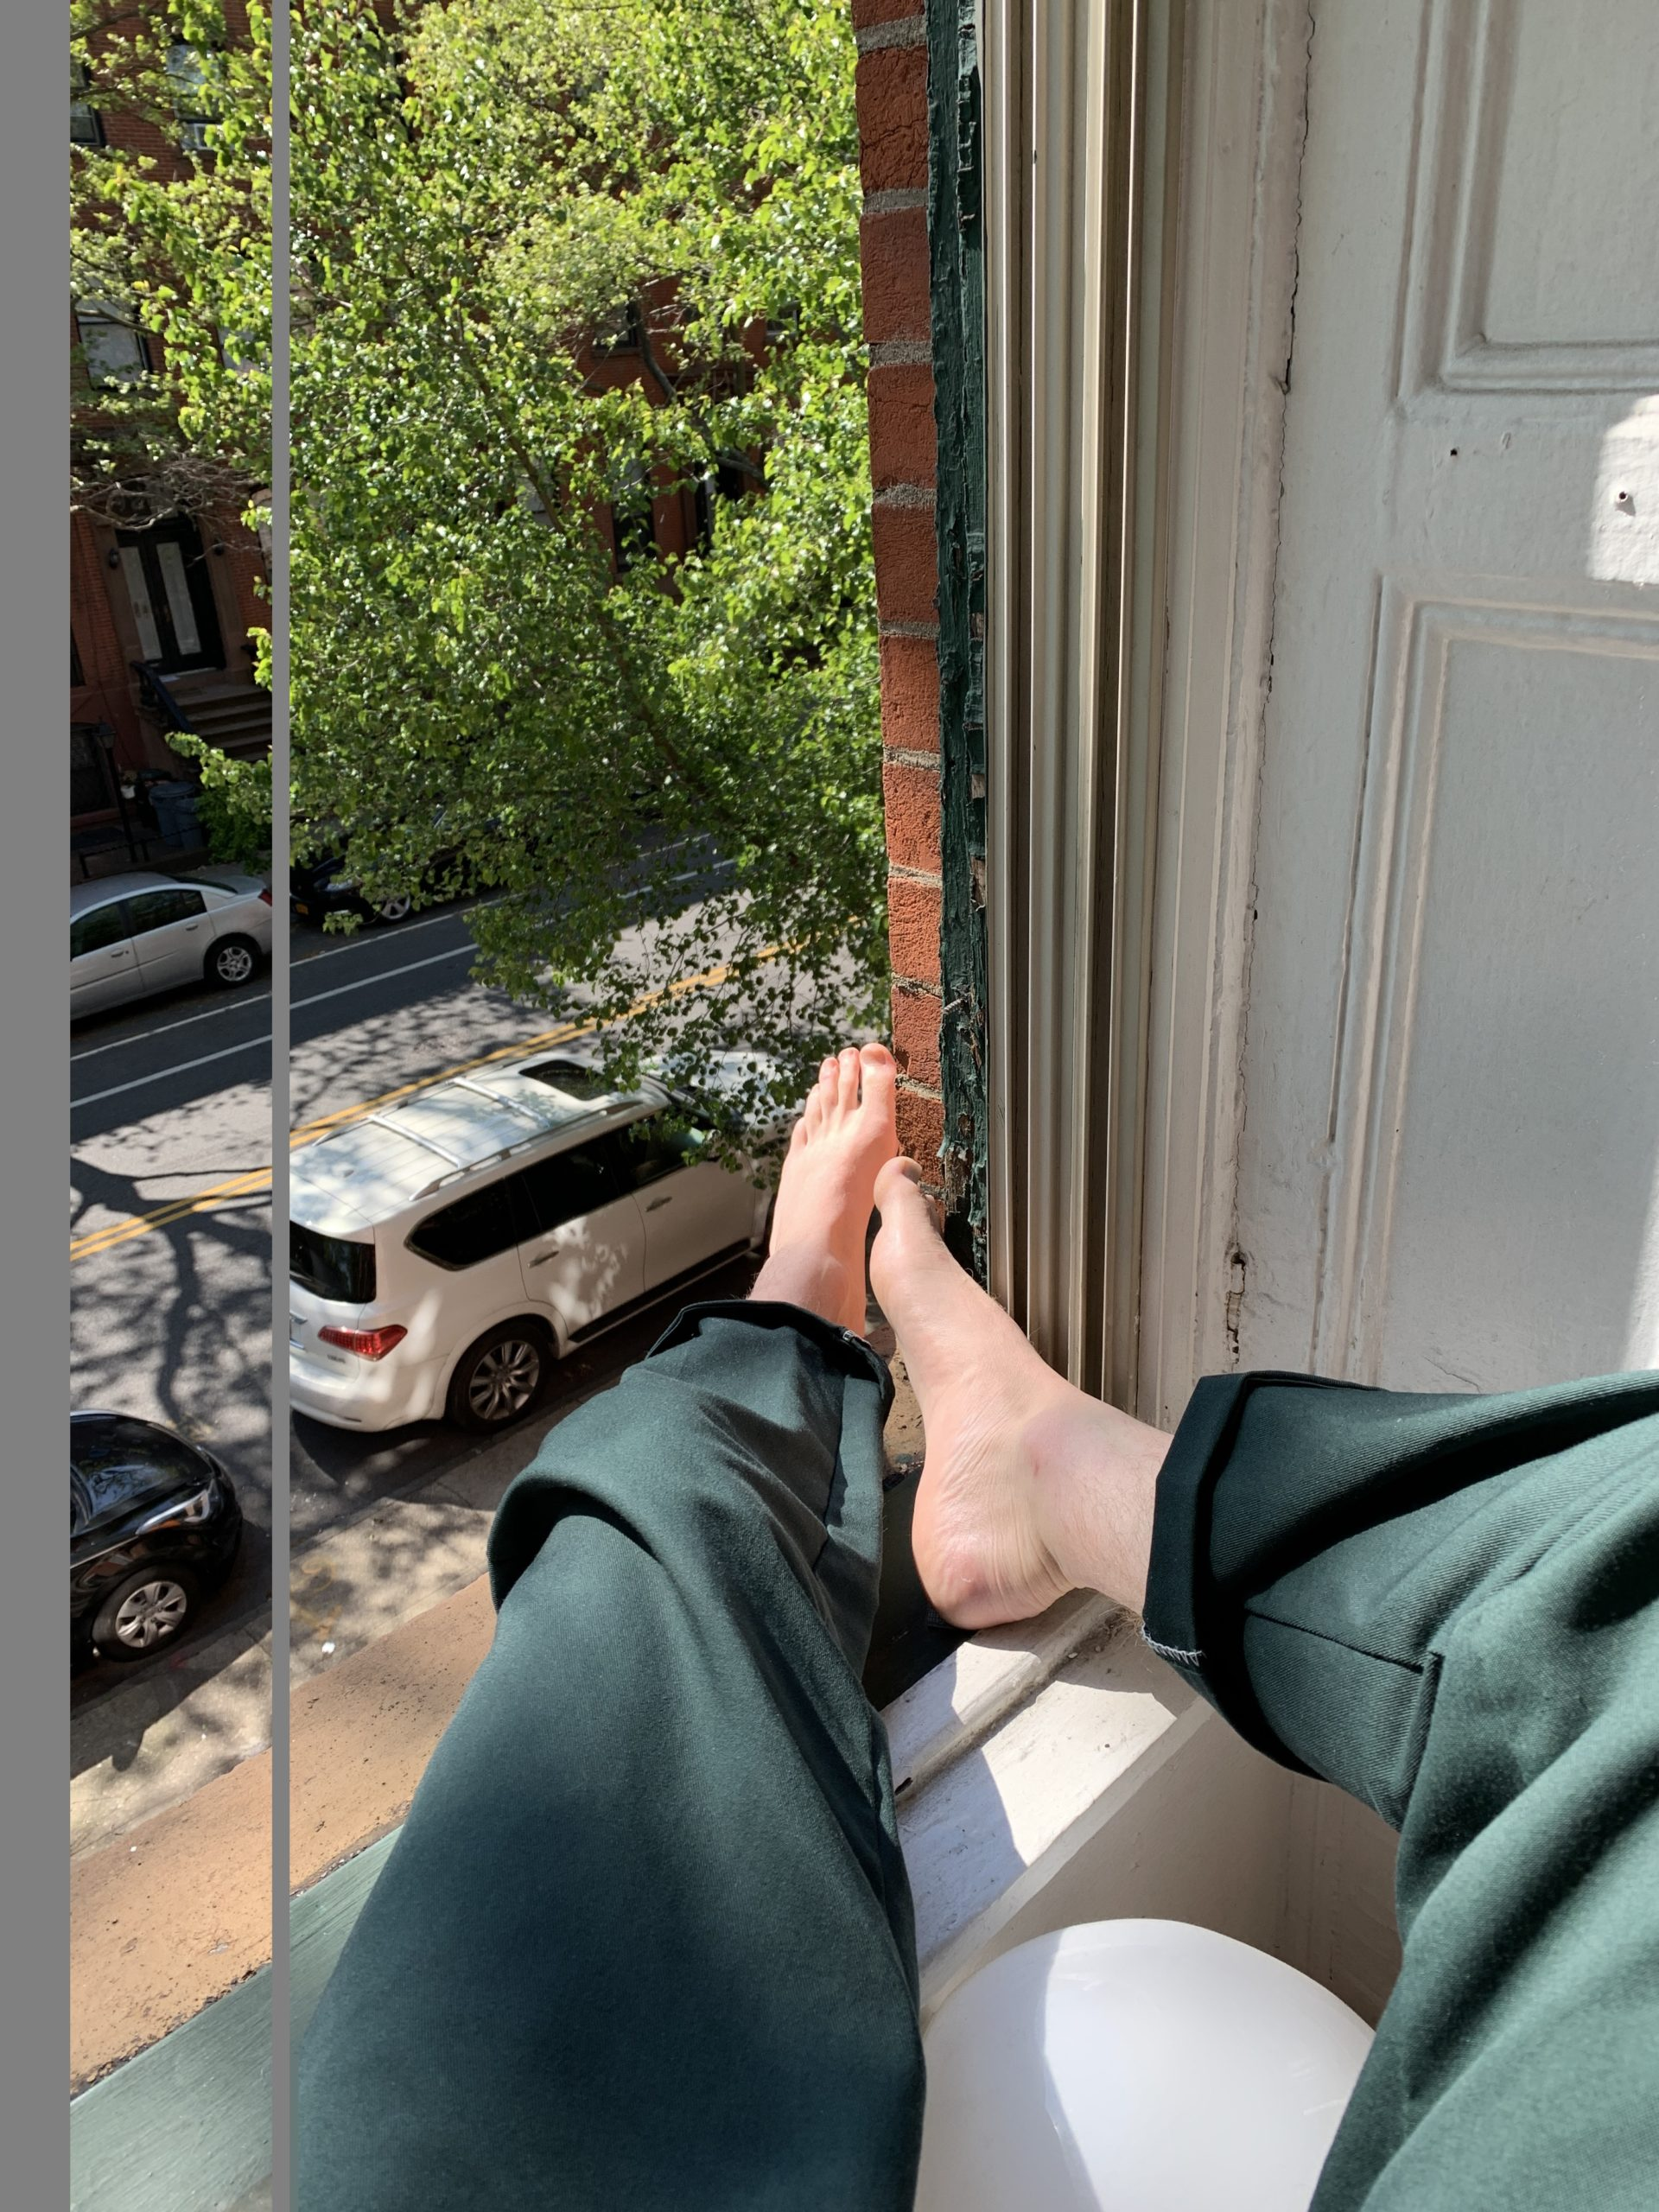 Man sitting on a window sill